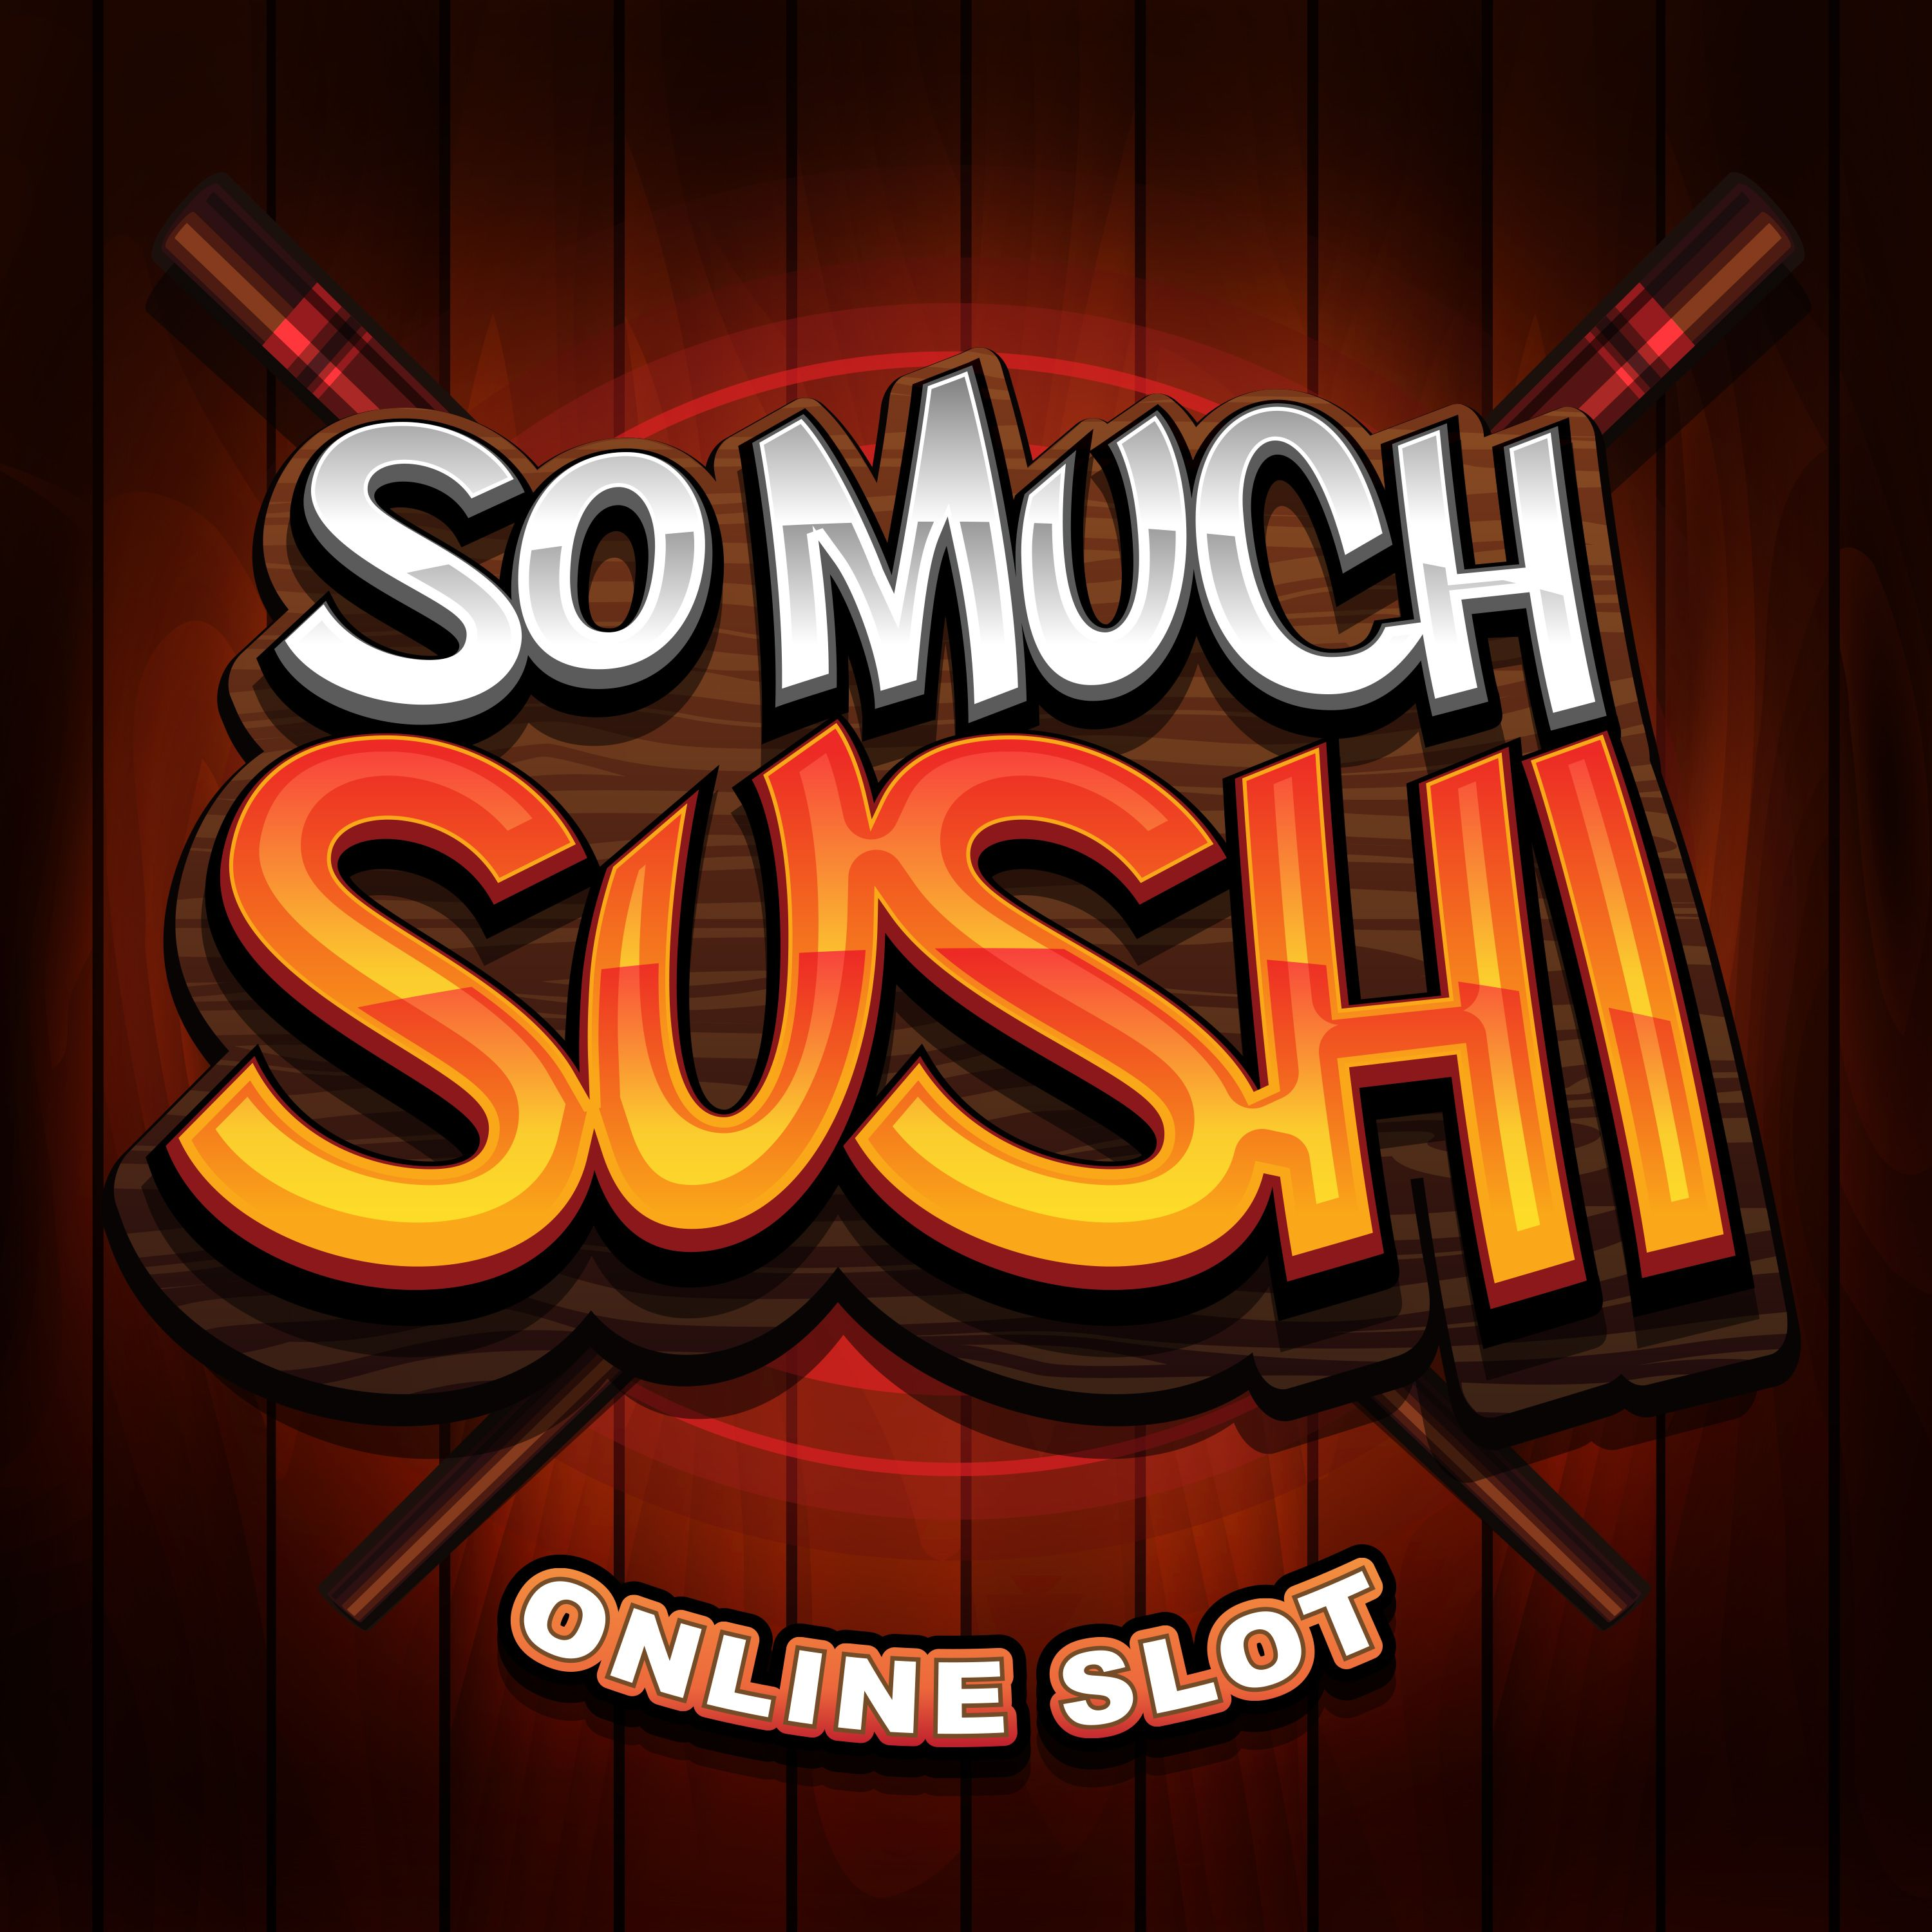 So Much Sushi online slot | Euro Palace Casino Blog